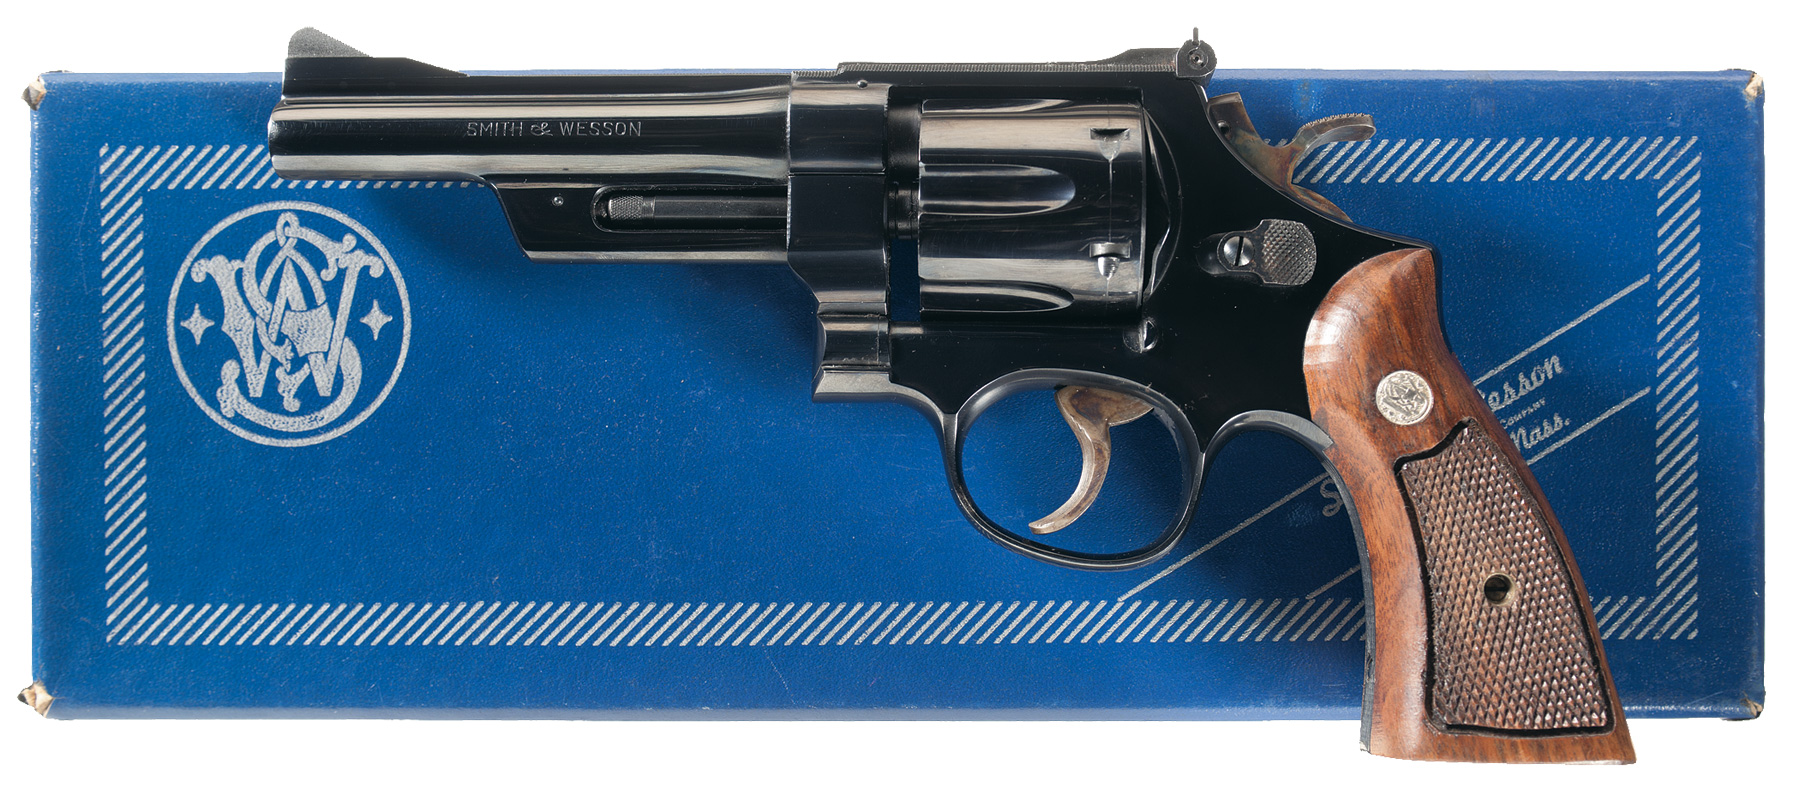 The Smith & Wesson Model 27. The best all around revolver. (Picture courtesy Rock Island Auction).